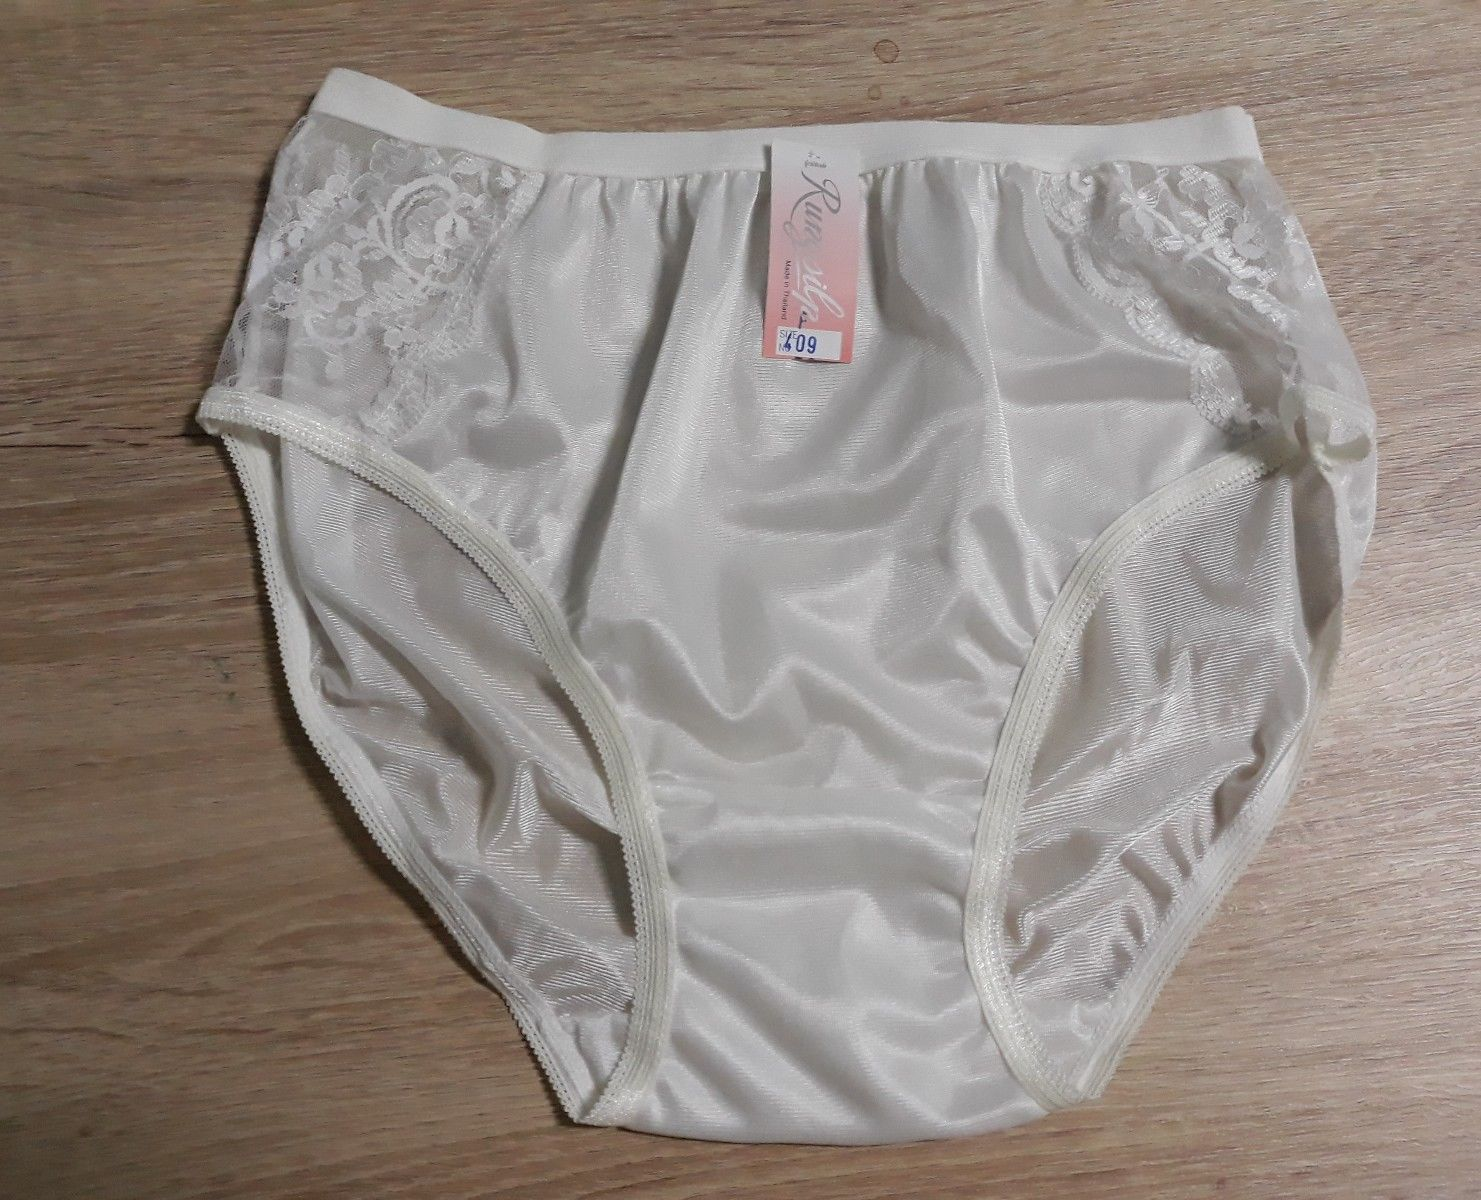 Panties 2 Pairs Briefs Size 8 Bnwt Elegant Appearance